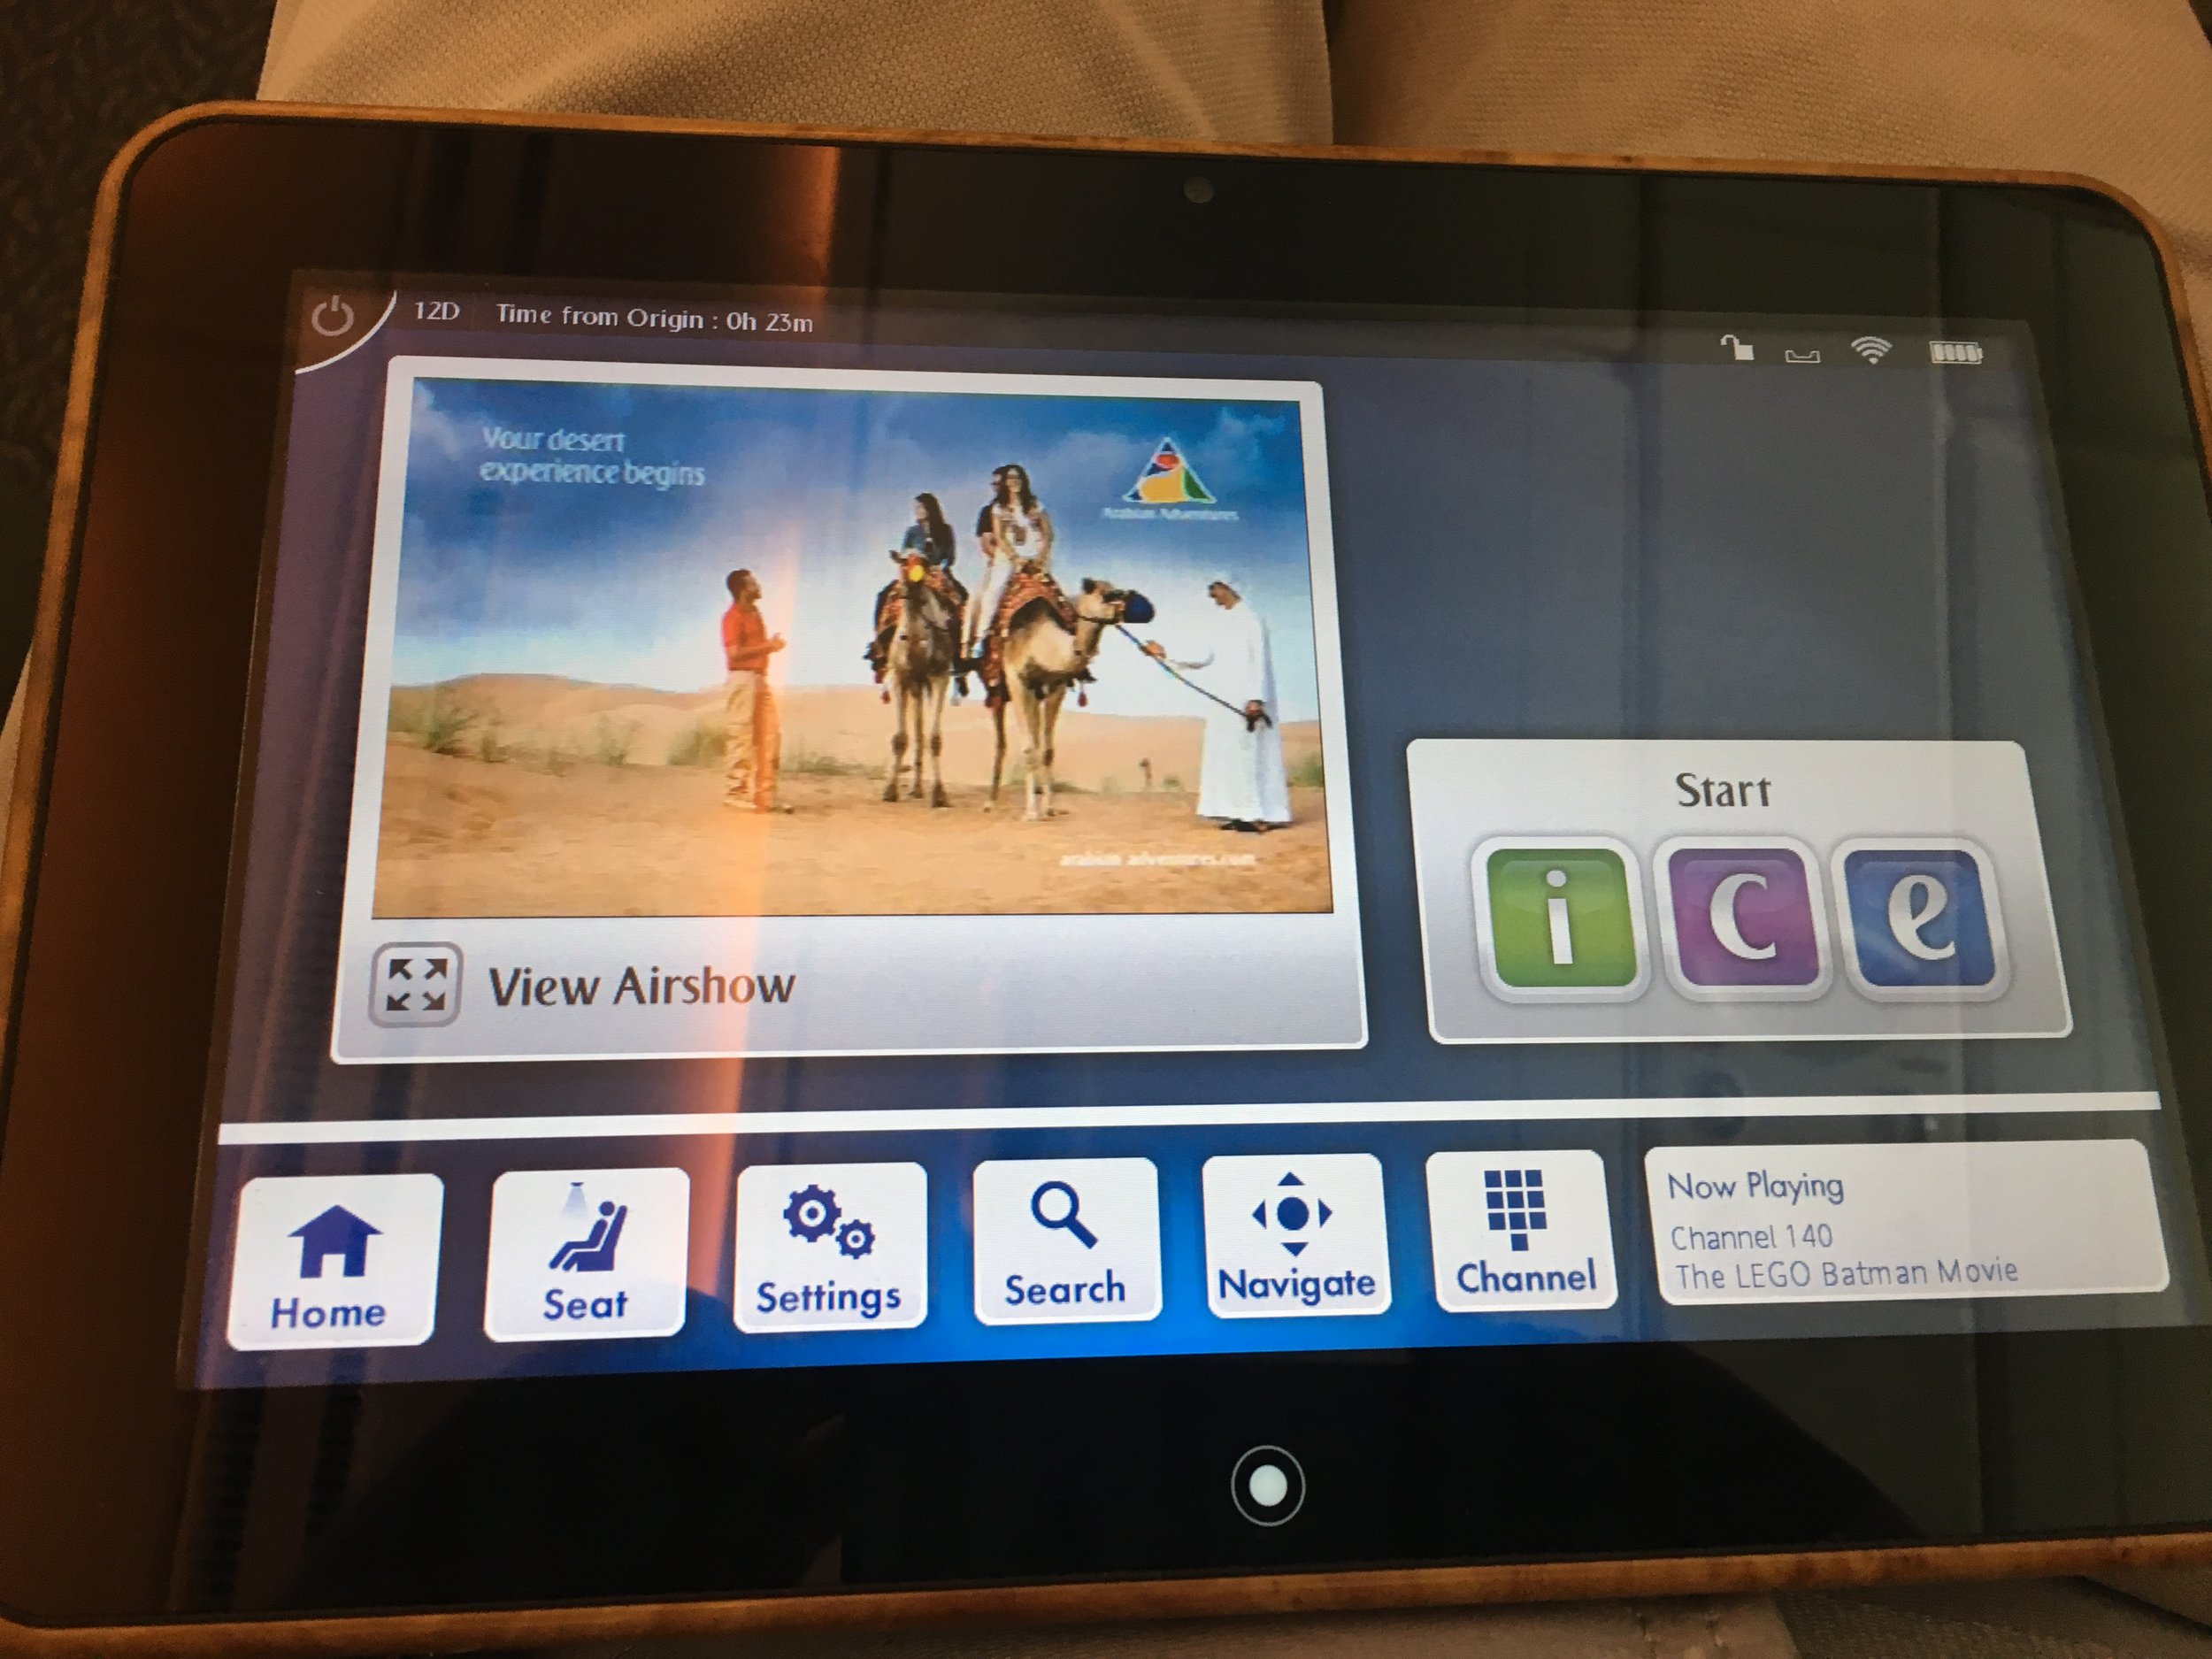 The tablet was able to control the whole system and also to display the air show independently from the main screen